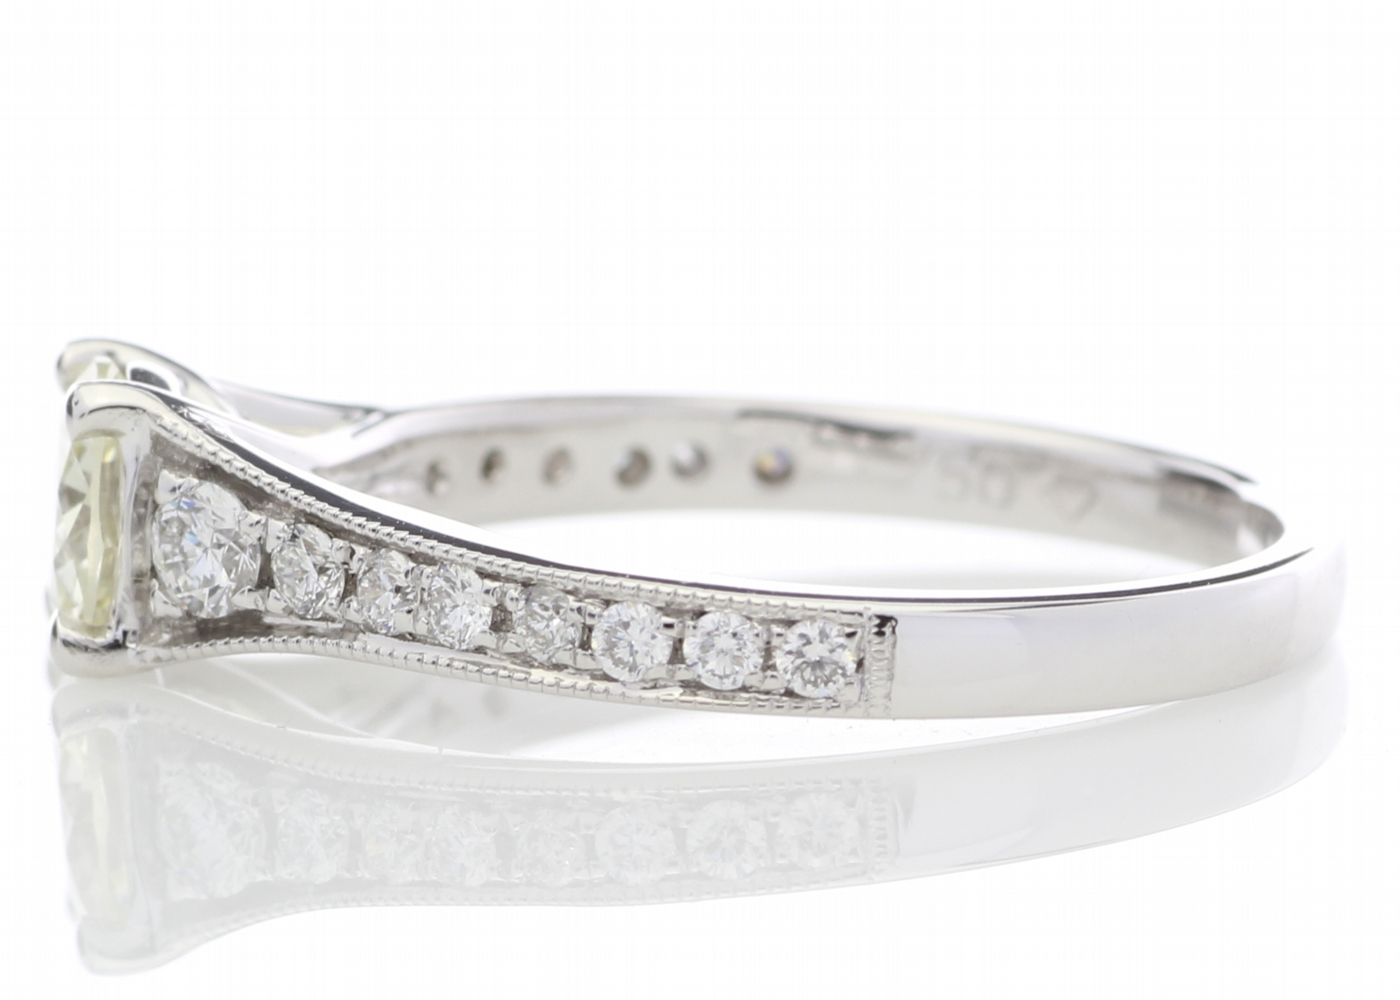 18ct White Gold Diamond Ring With Stone Set Shoulders 0.80 Carats - Image 3 of 5